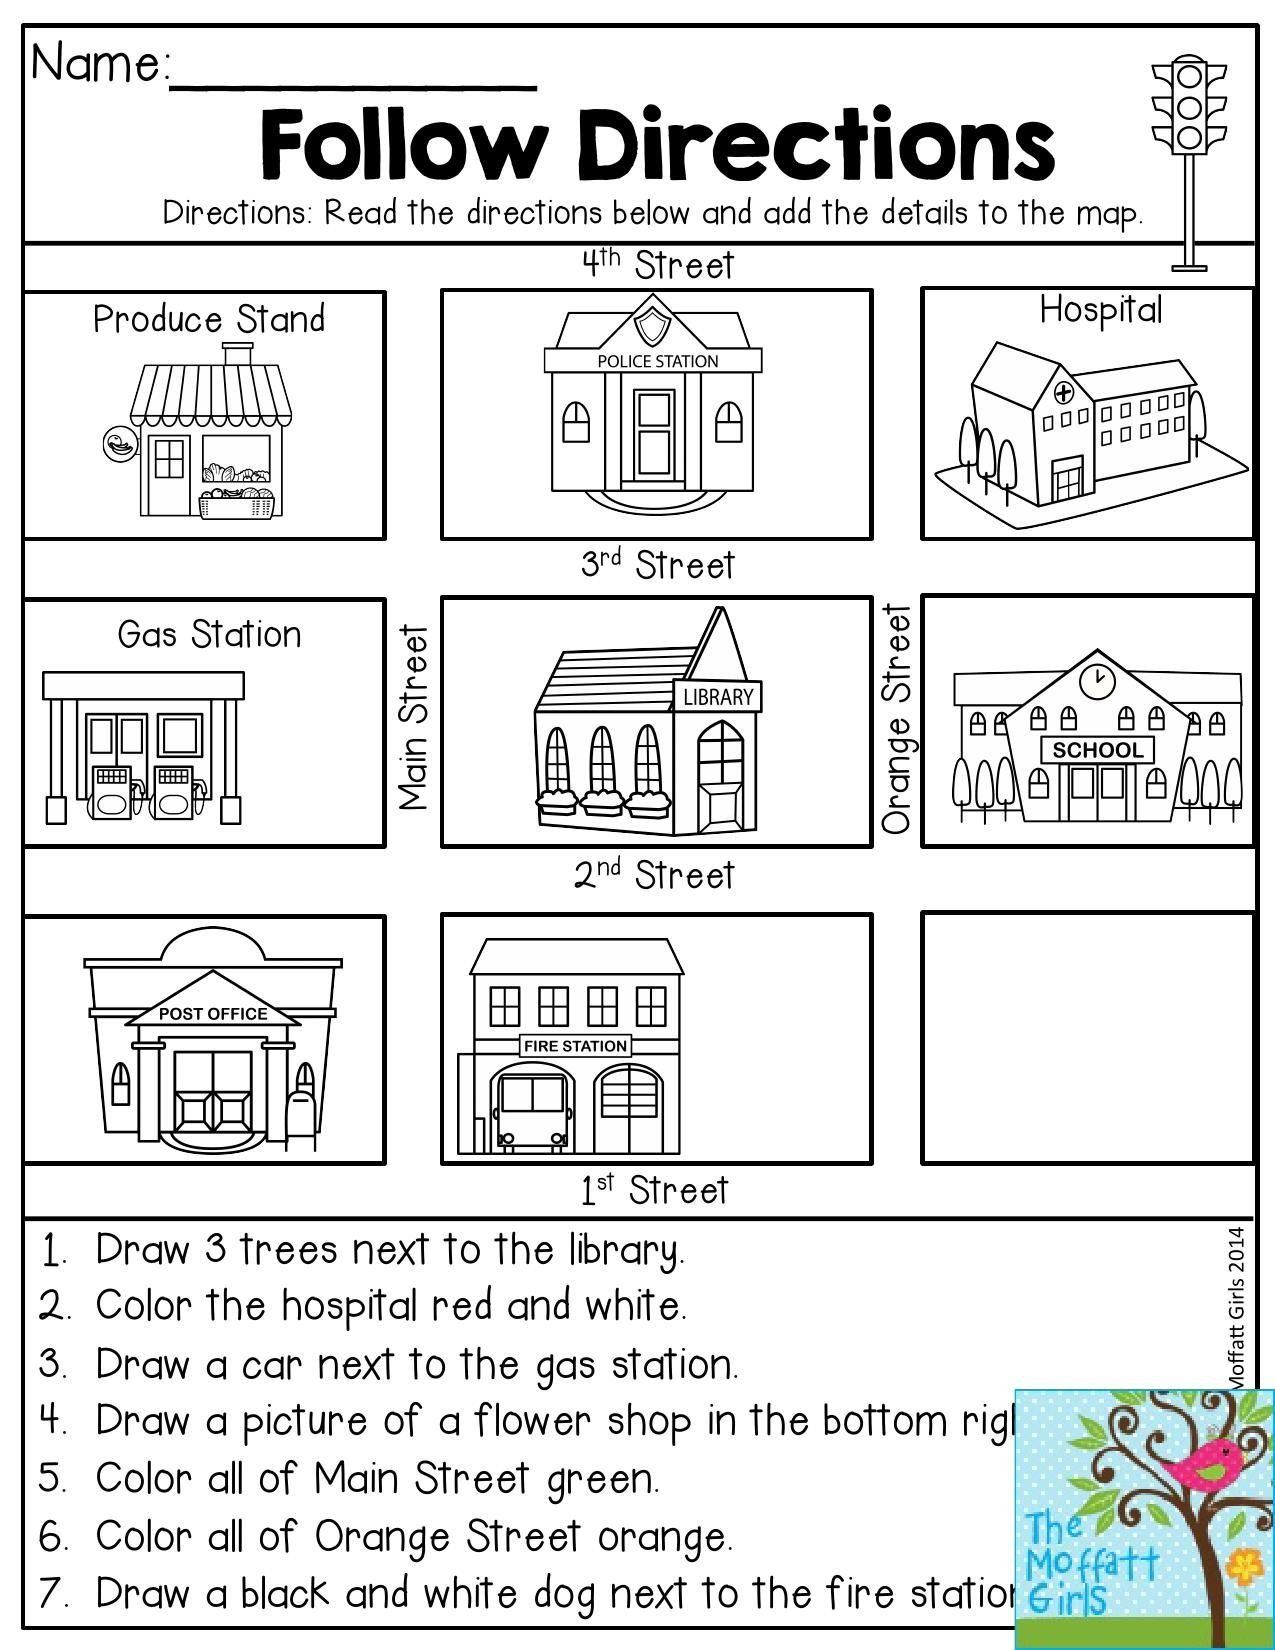 hight resolution of Following 2 Step Directions Worksheets Follow Directions Read the Directions  and Add the D…   Map skills worksheets